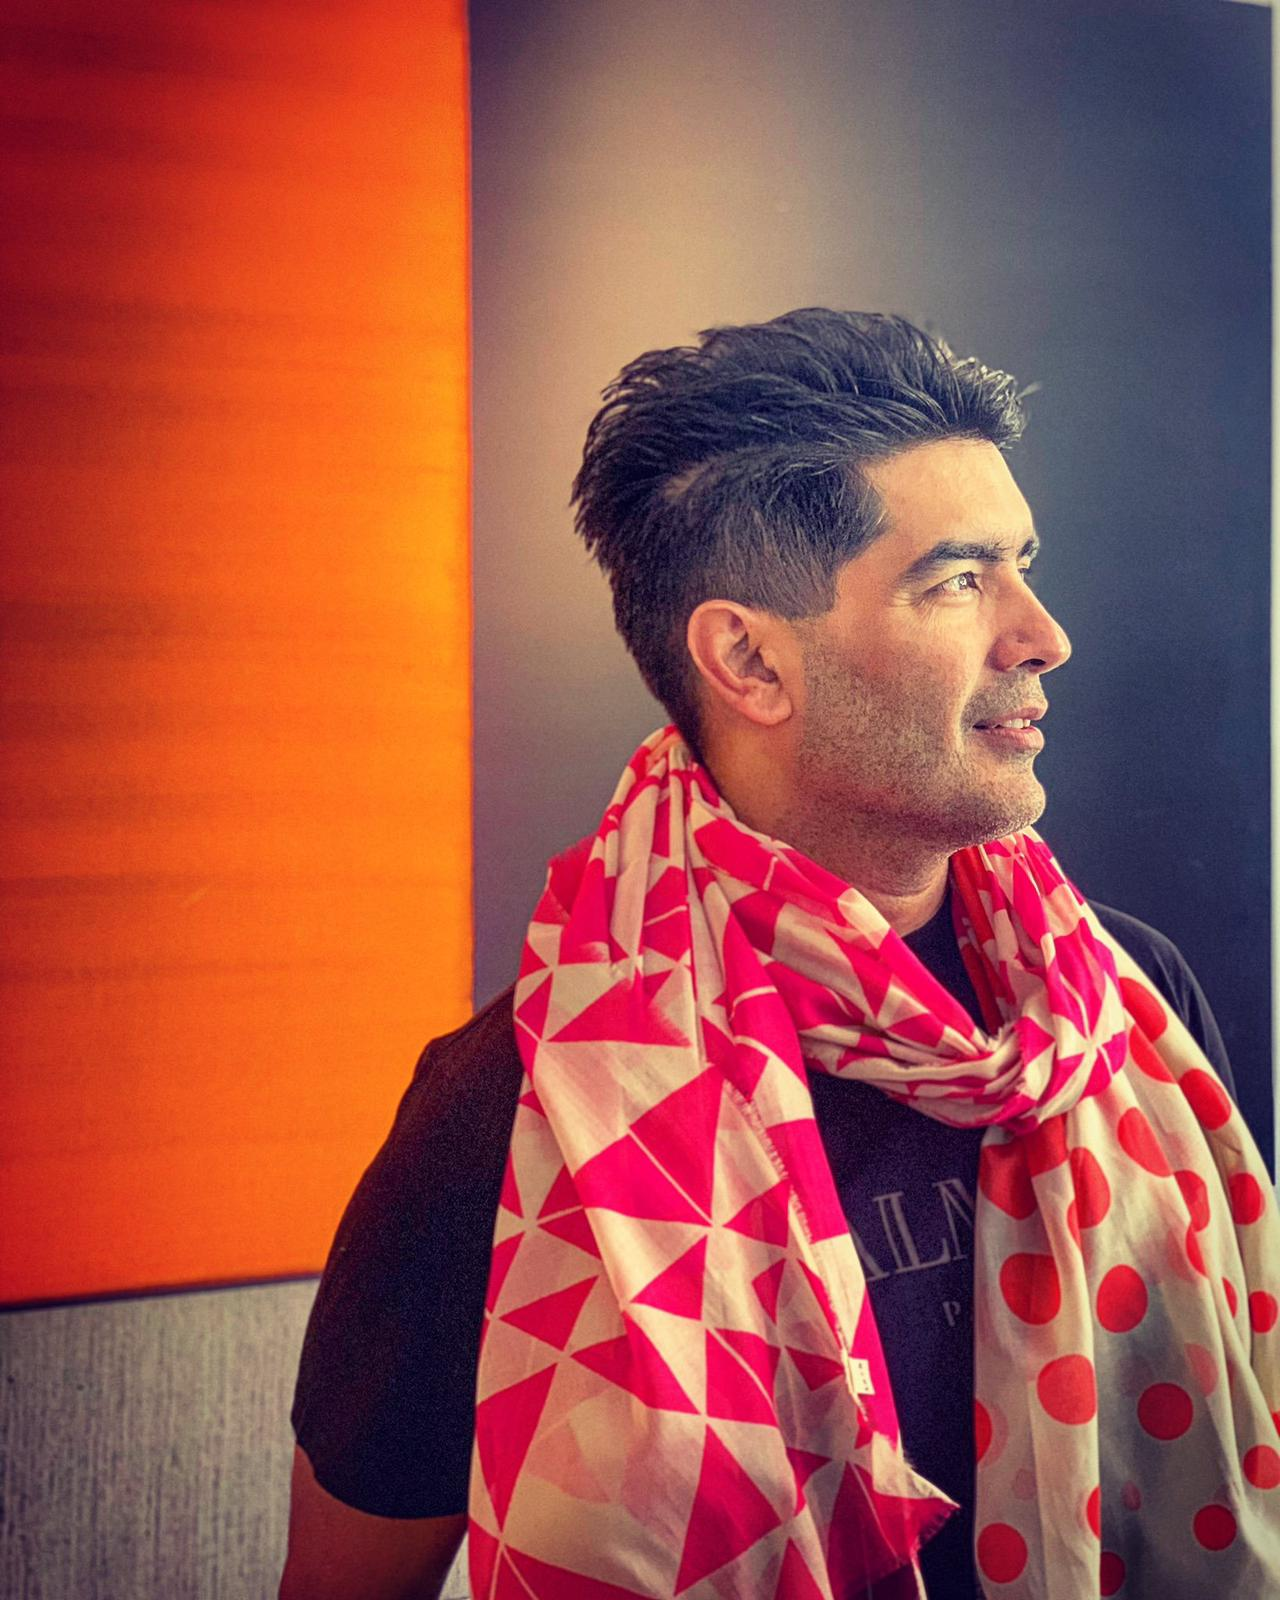 Rangeela At 25 Manish Malhotra Says Film Gave Credence To Styling In Bollywood Entertainment